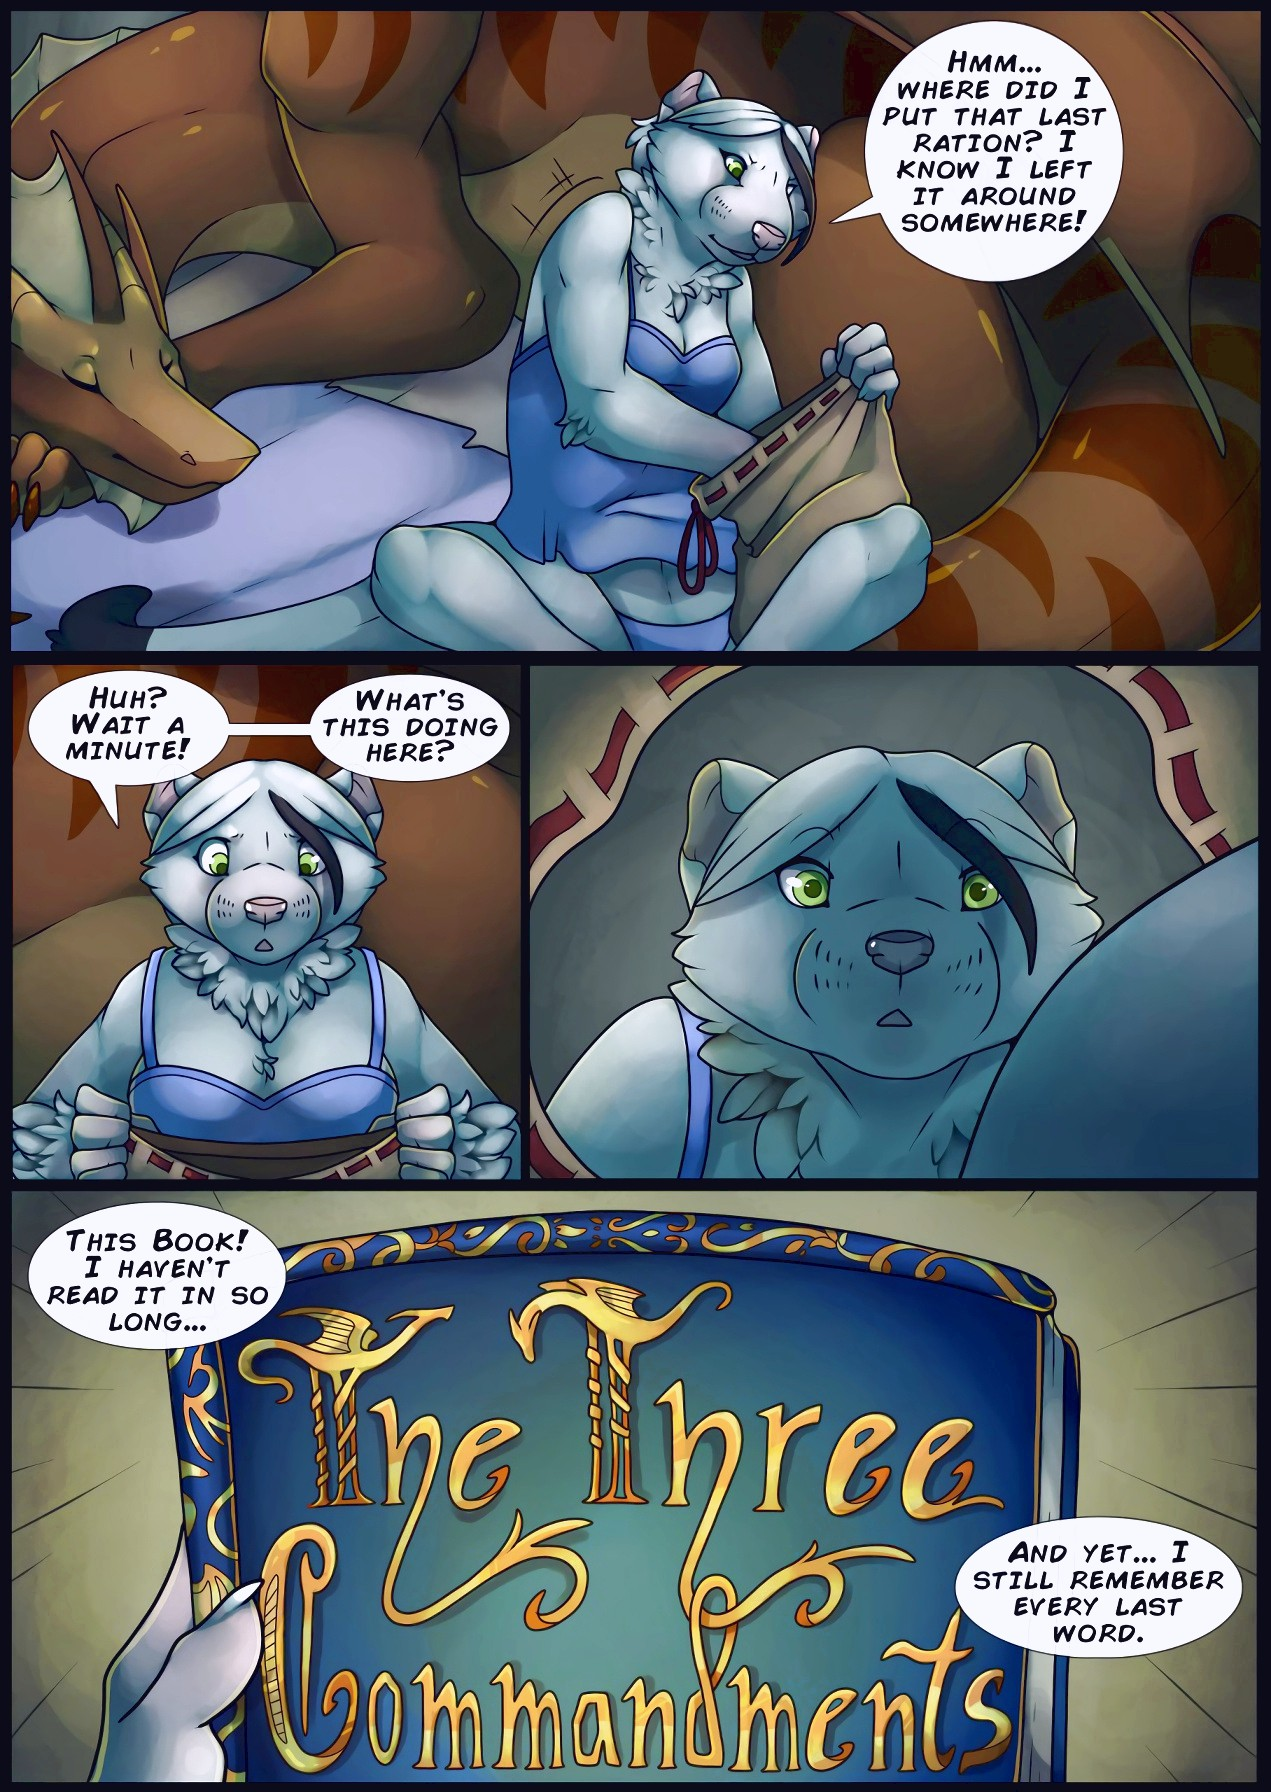 The Three Commandments furry porn comic page 01